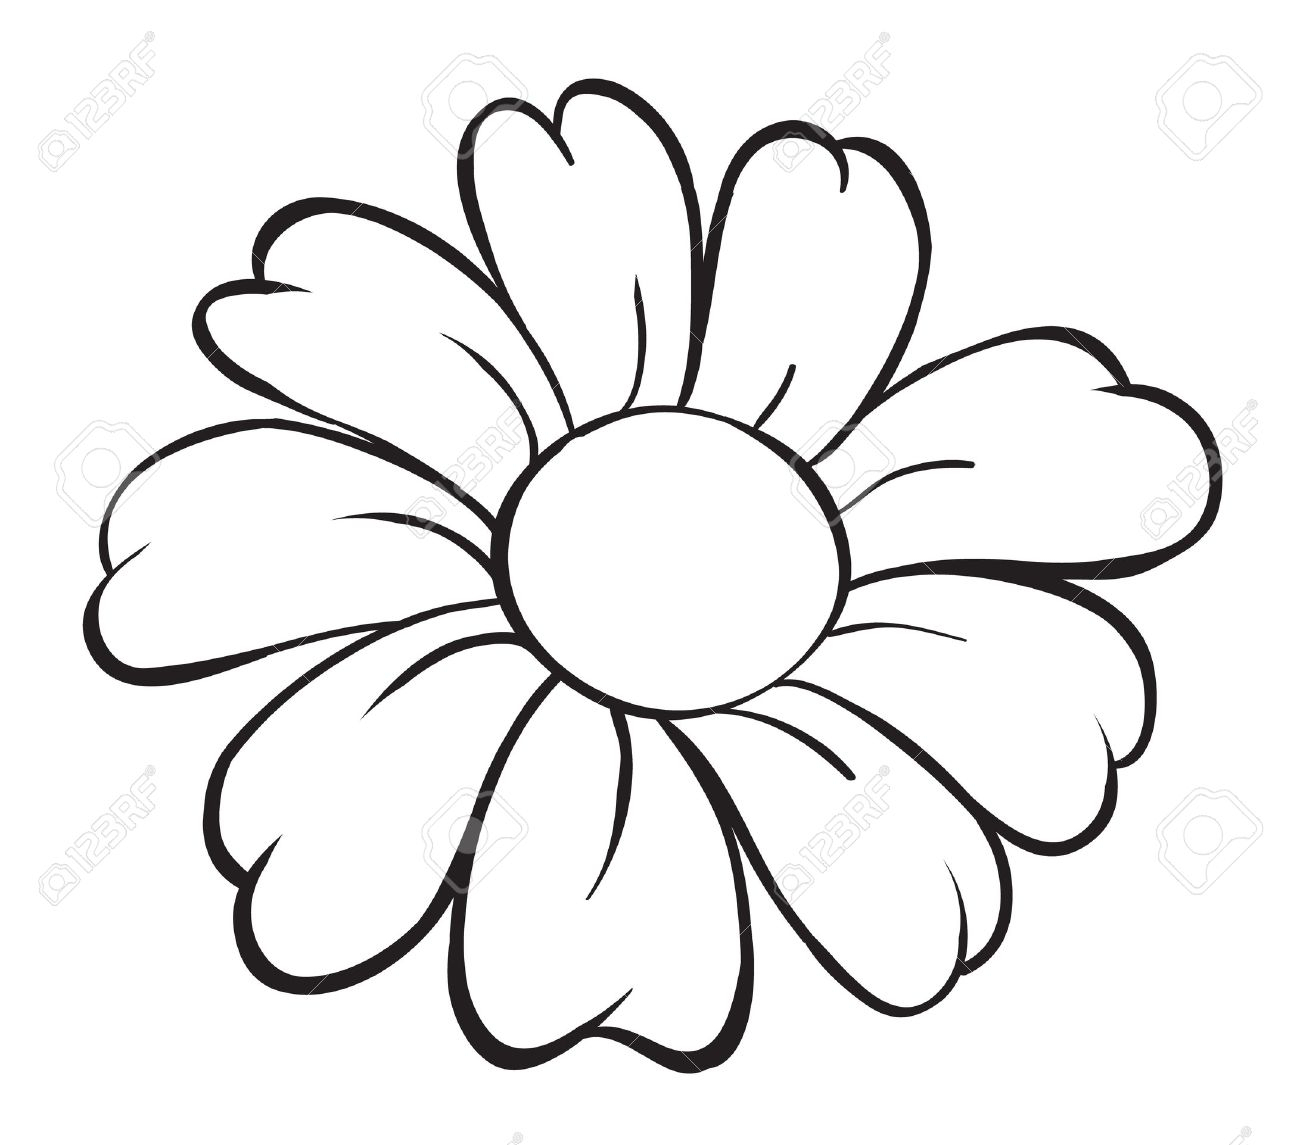 banner black and white Easy cartoon drawings and. Cartoons drawing flower